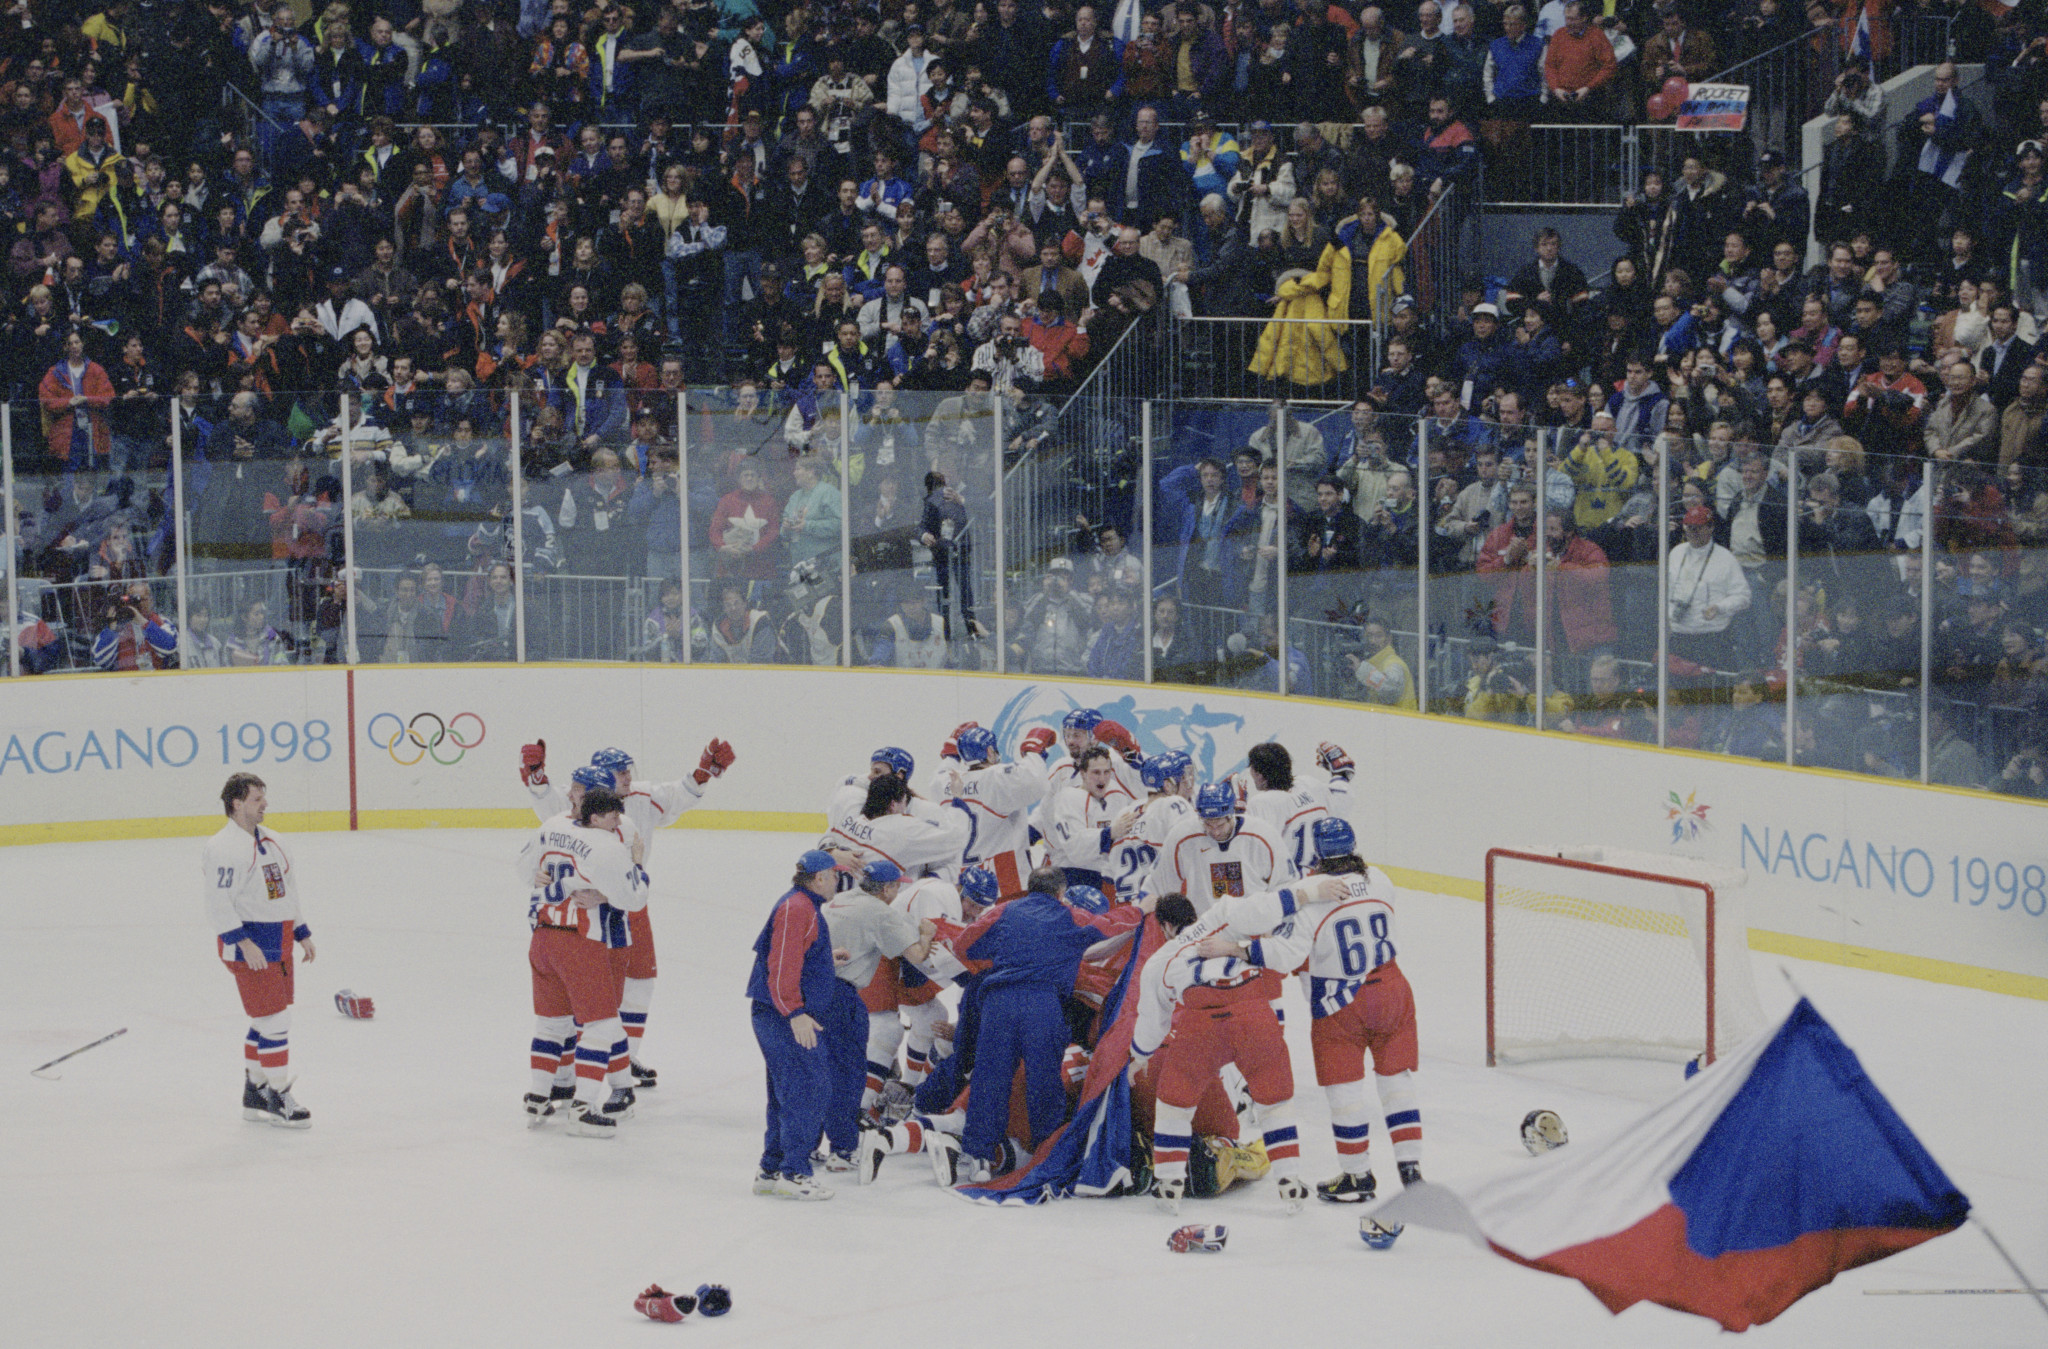 Czech Republic celebrate winning the Olympic gold medal at Nagano 1998 ©Getty Images